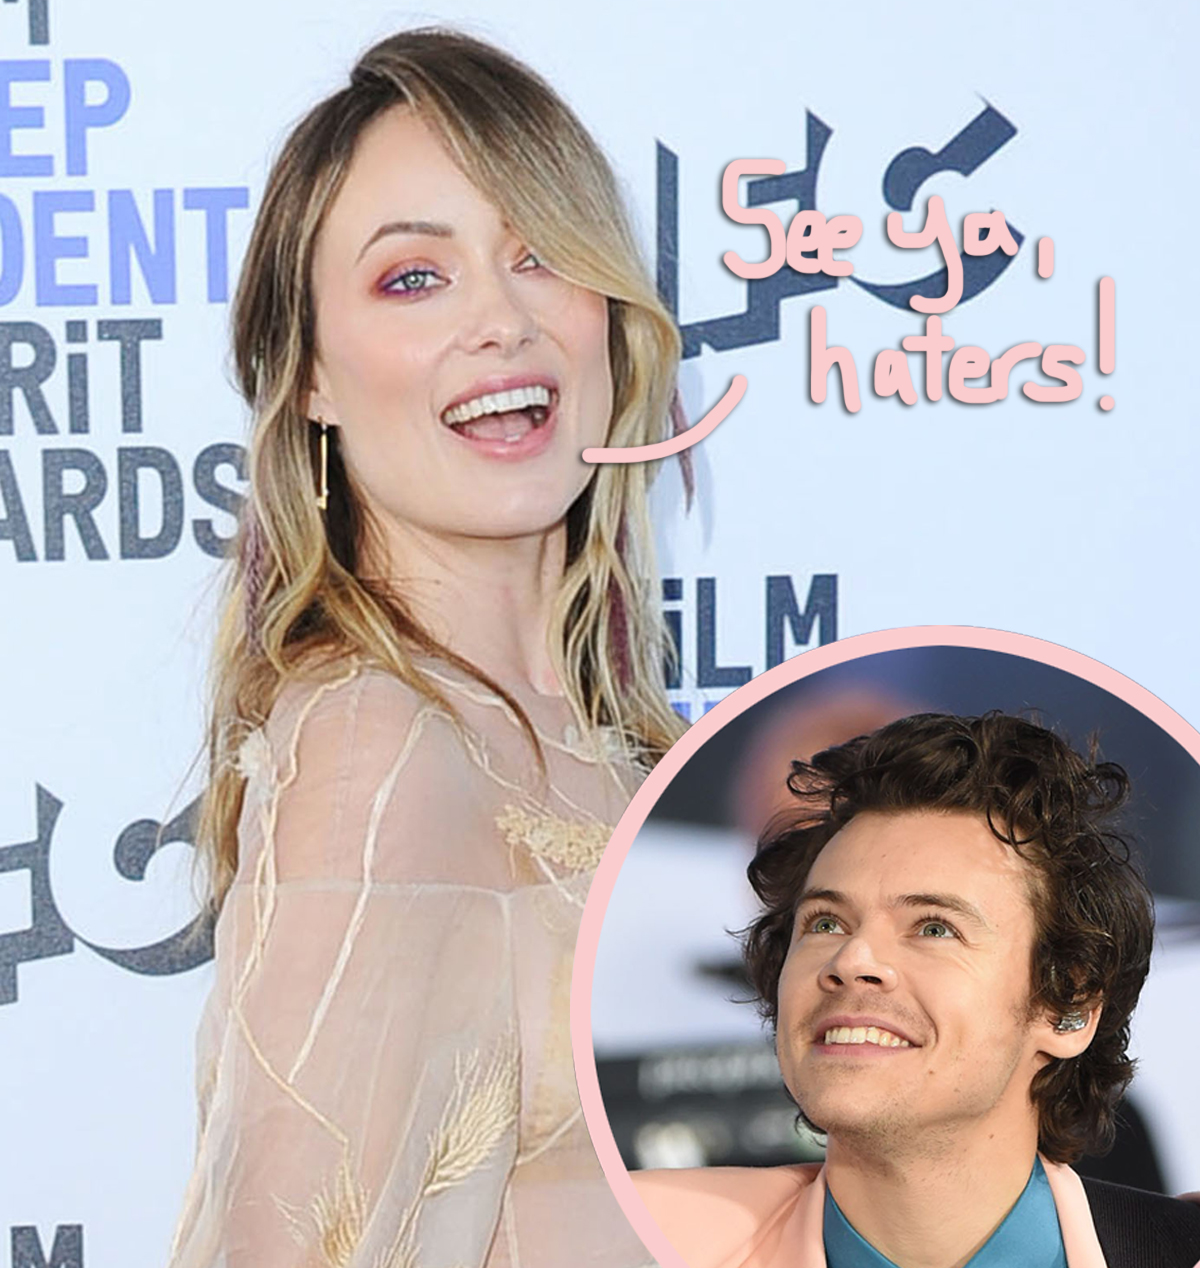 Olivia Wilde Restricts Instagram Comments After Getting ATTACKED By Harry Styles Fans Over Relationship